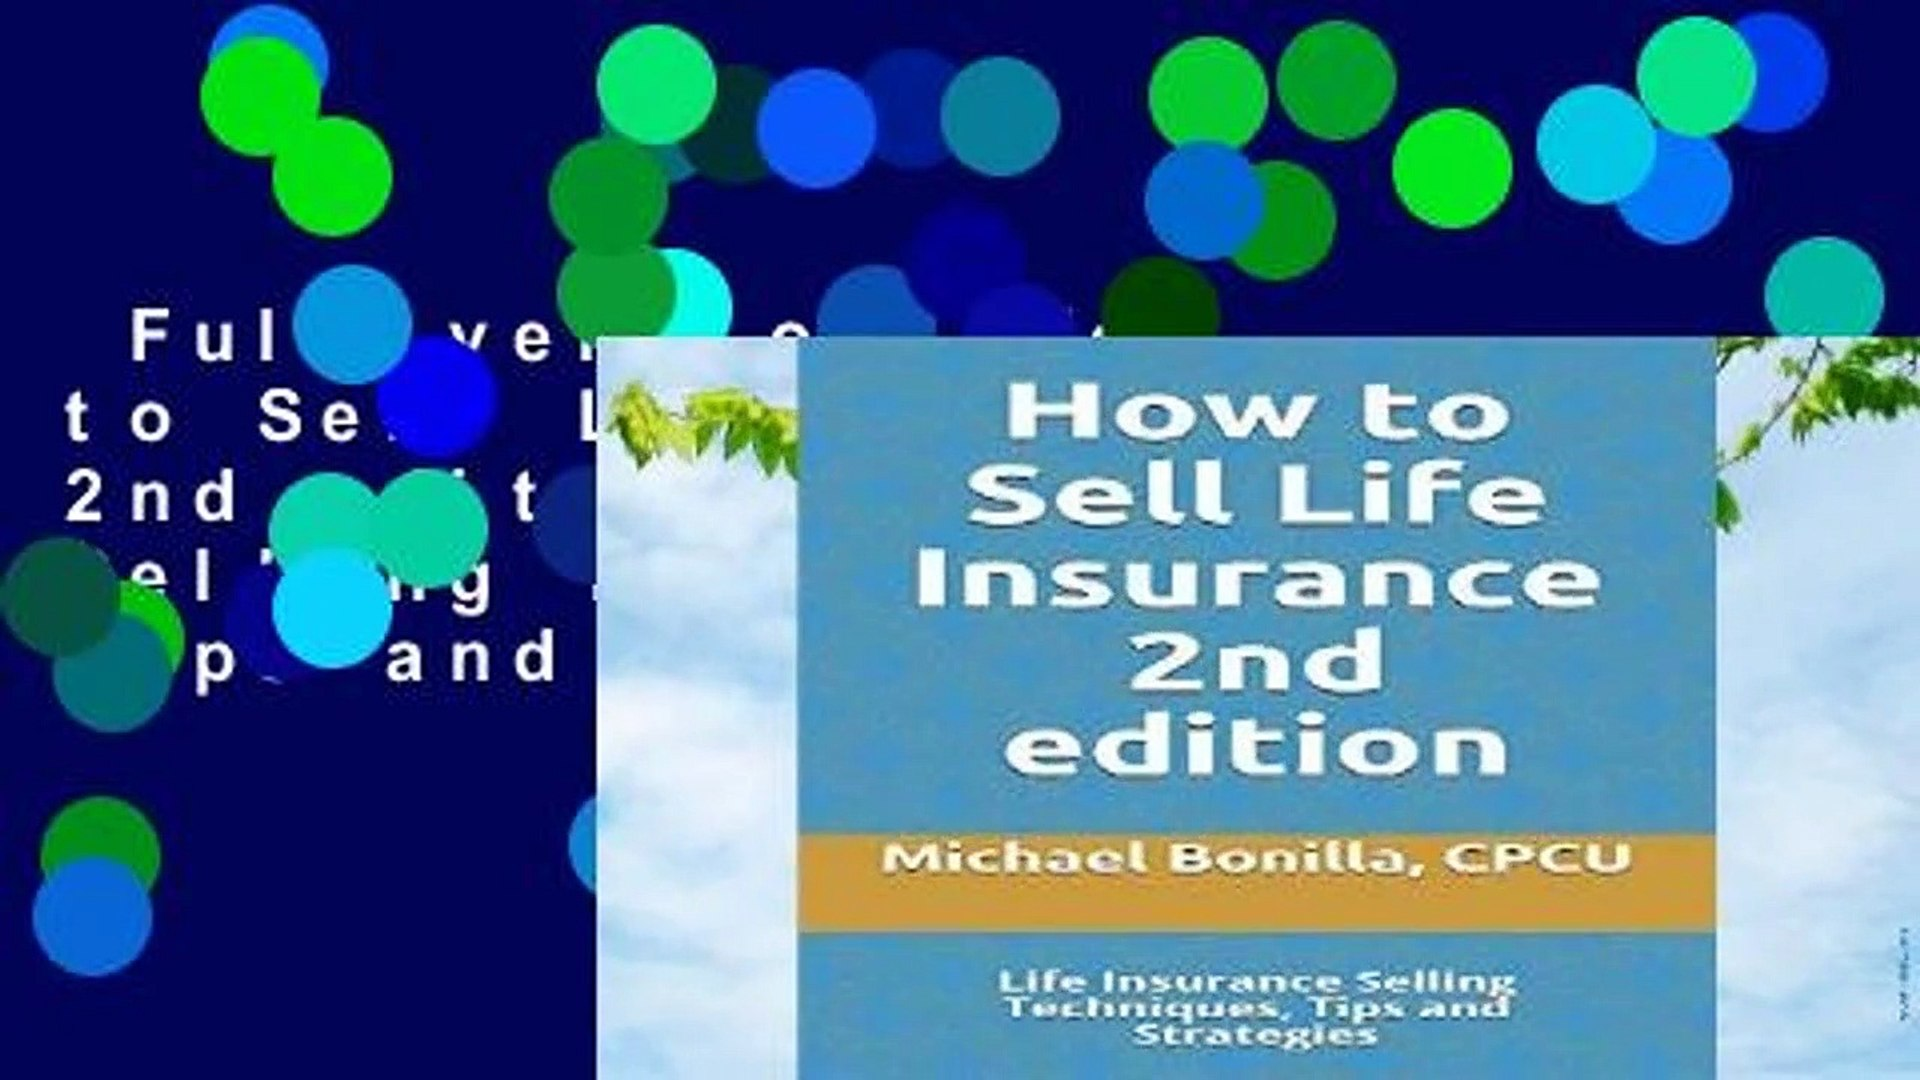 Full version  How to Sell Life Insurance 2nd edition: Life Insurance Selling Techniques, Tips and